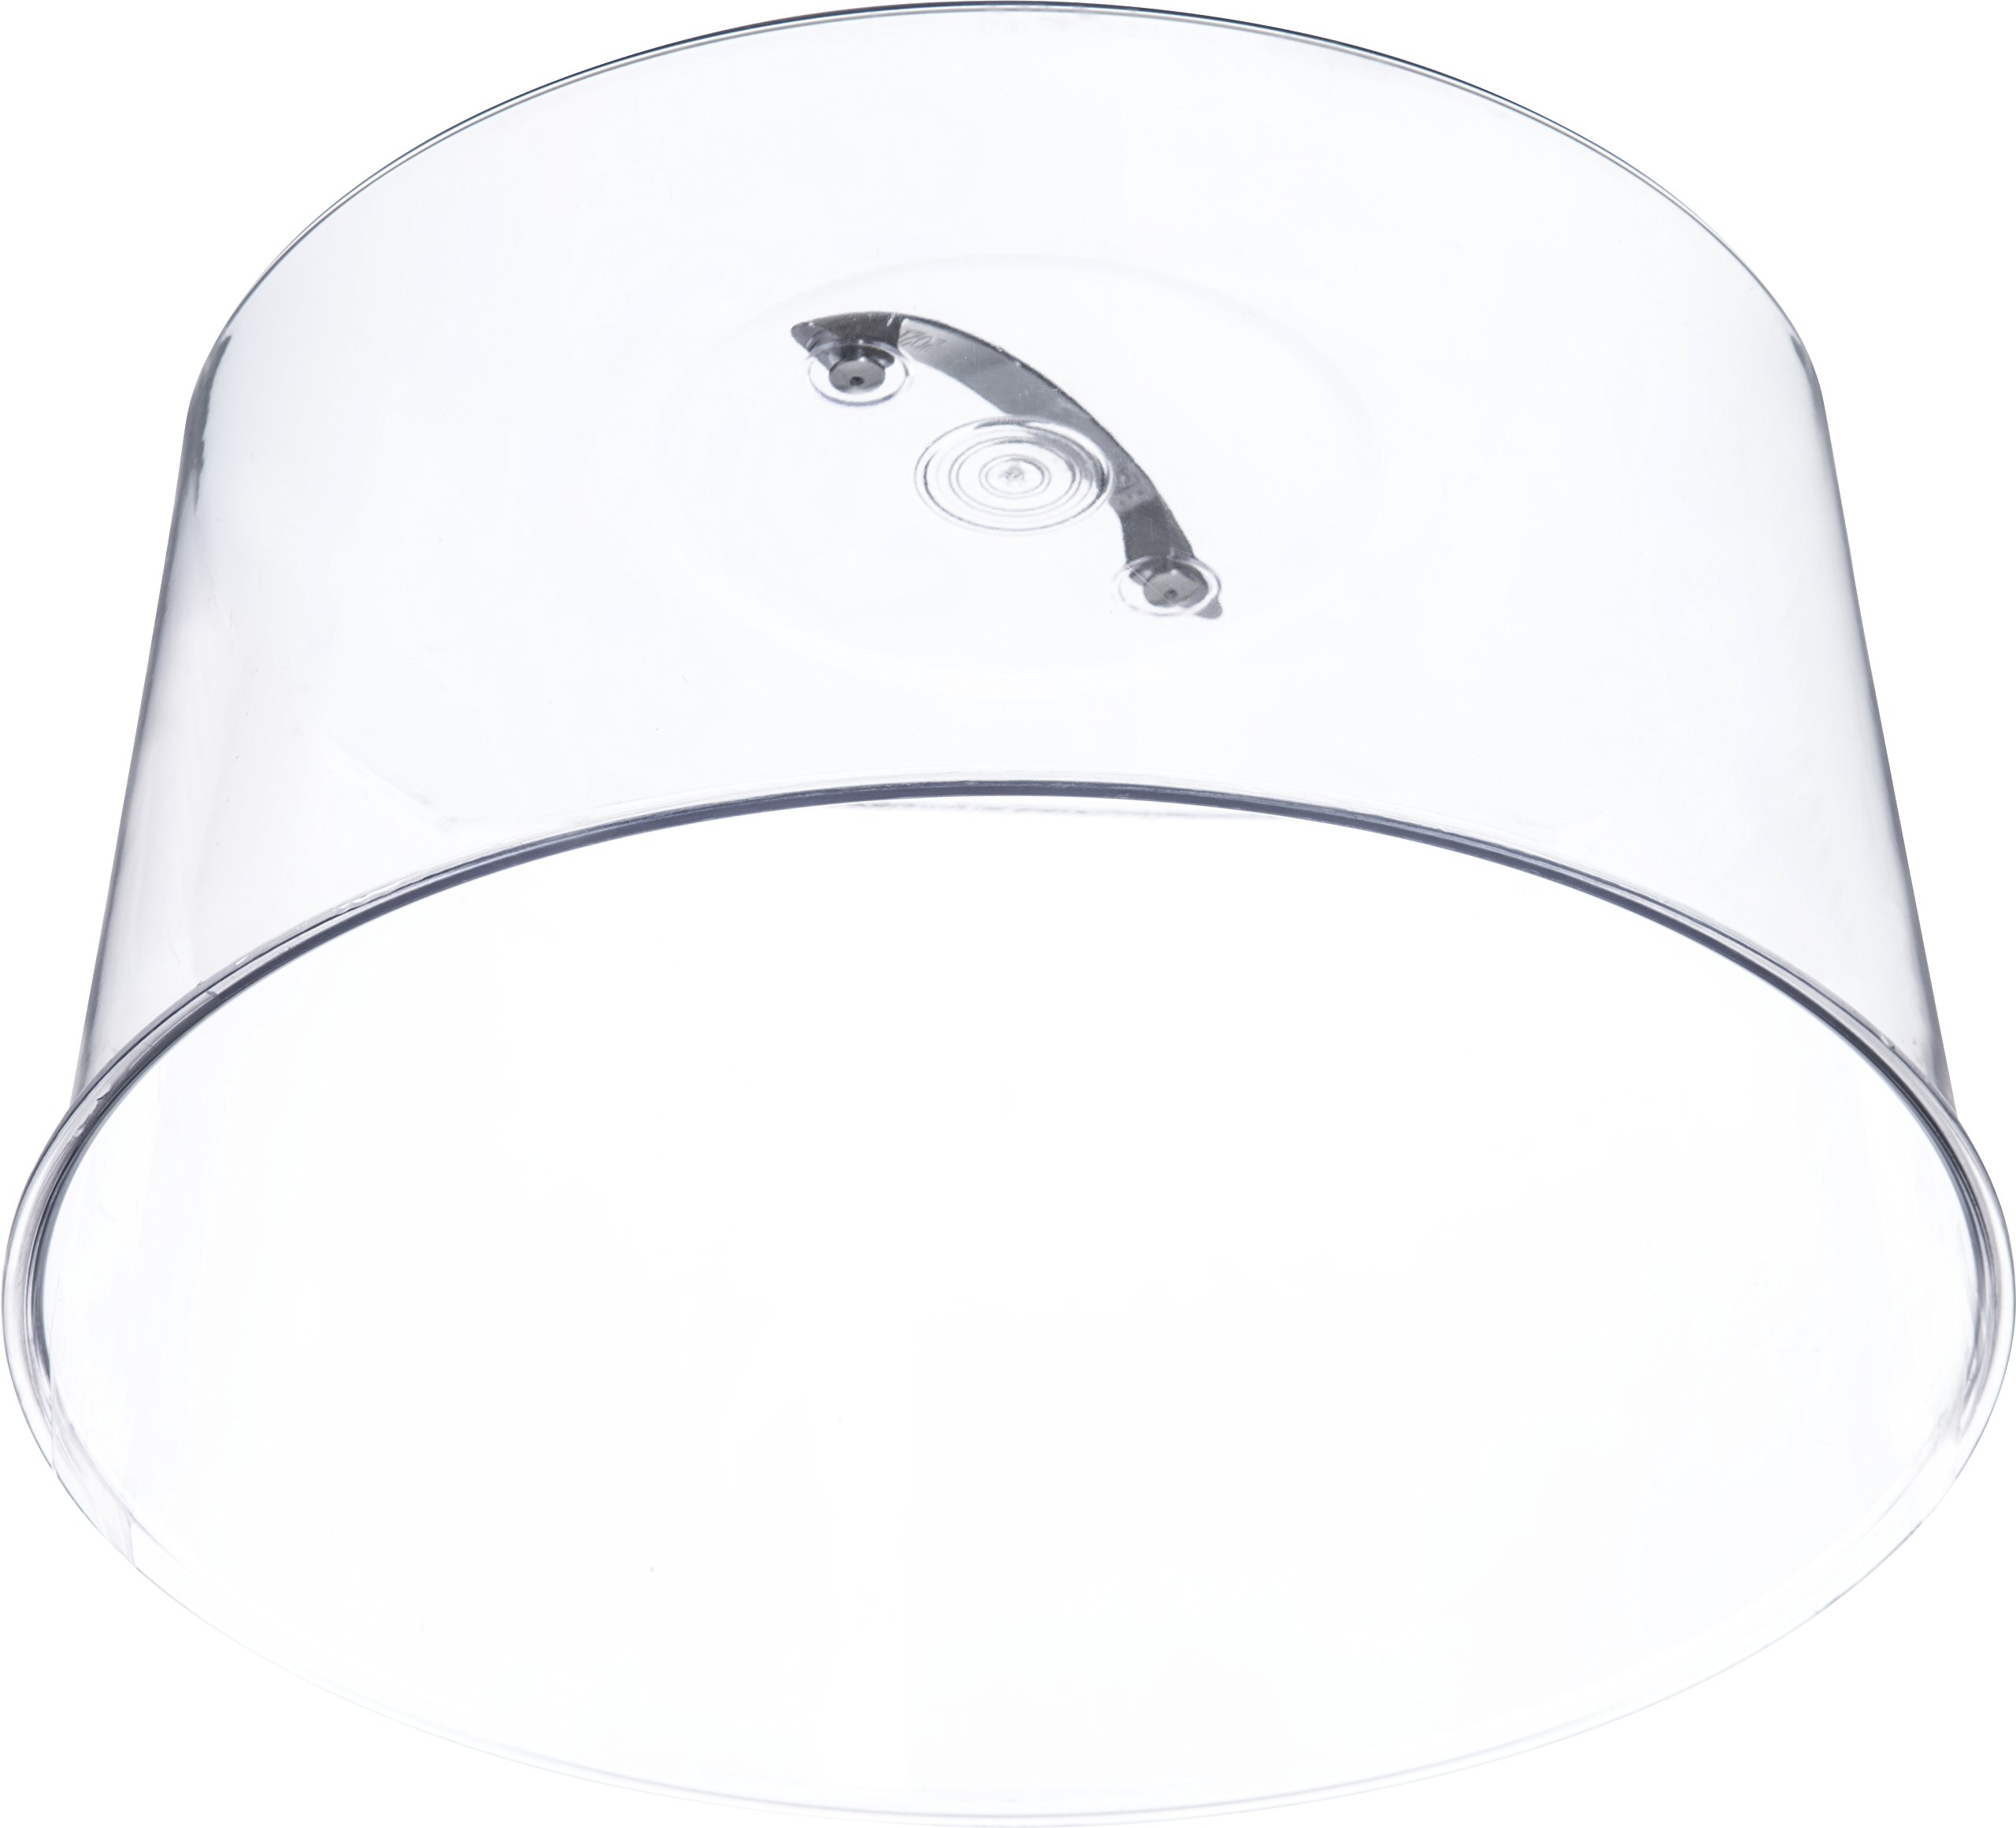 Carlisle 251207 Shatterproof 12'' Cake Cover / Dome, 6'' High (Pack of 6) by Carlisle (Image #3)